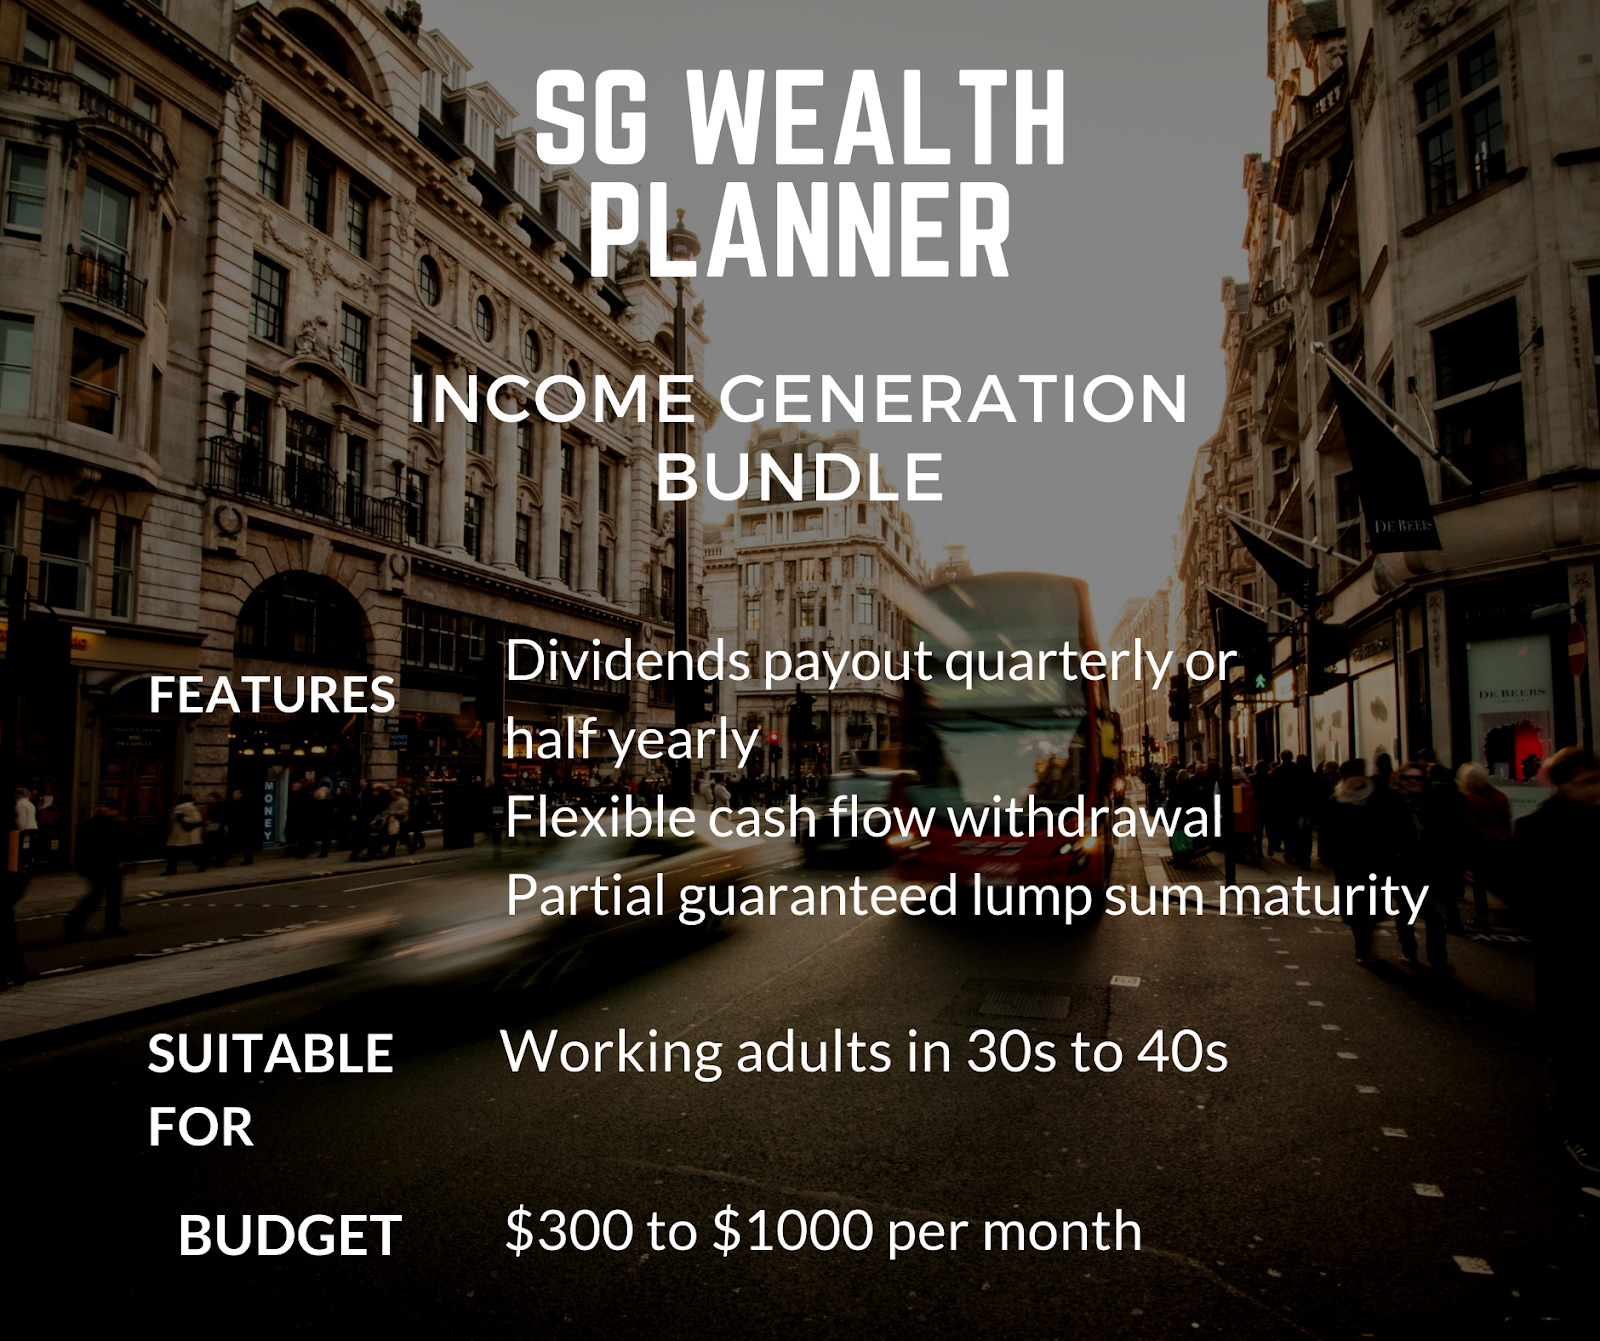 Income Generation Bundle